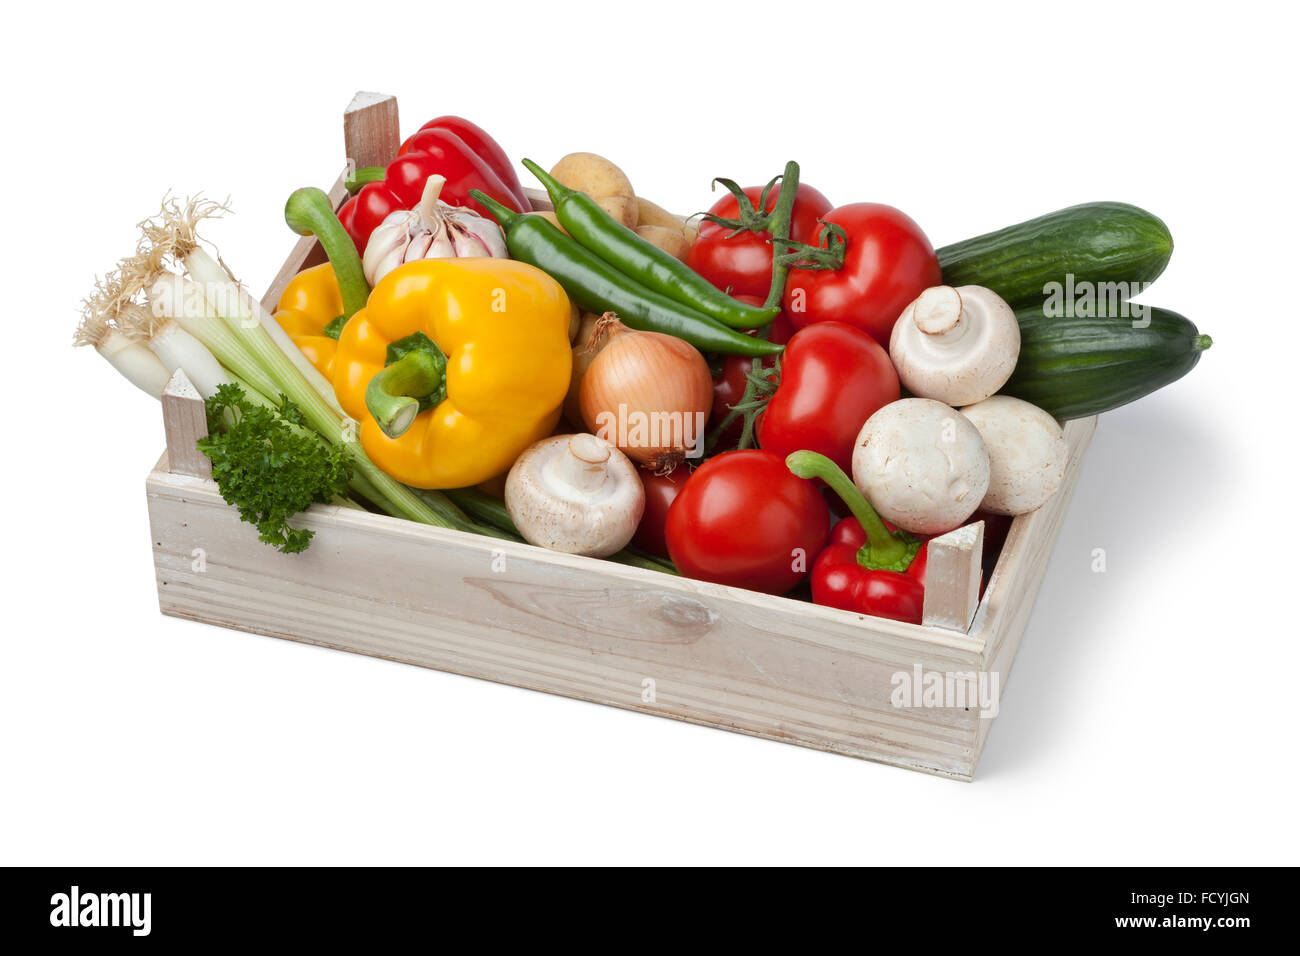 Wooden chest with fresh vegetables on white background - Stock Image